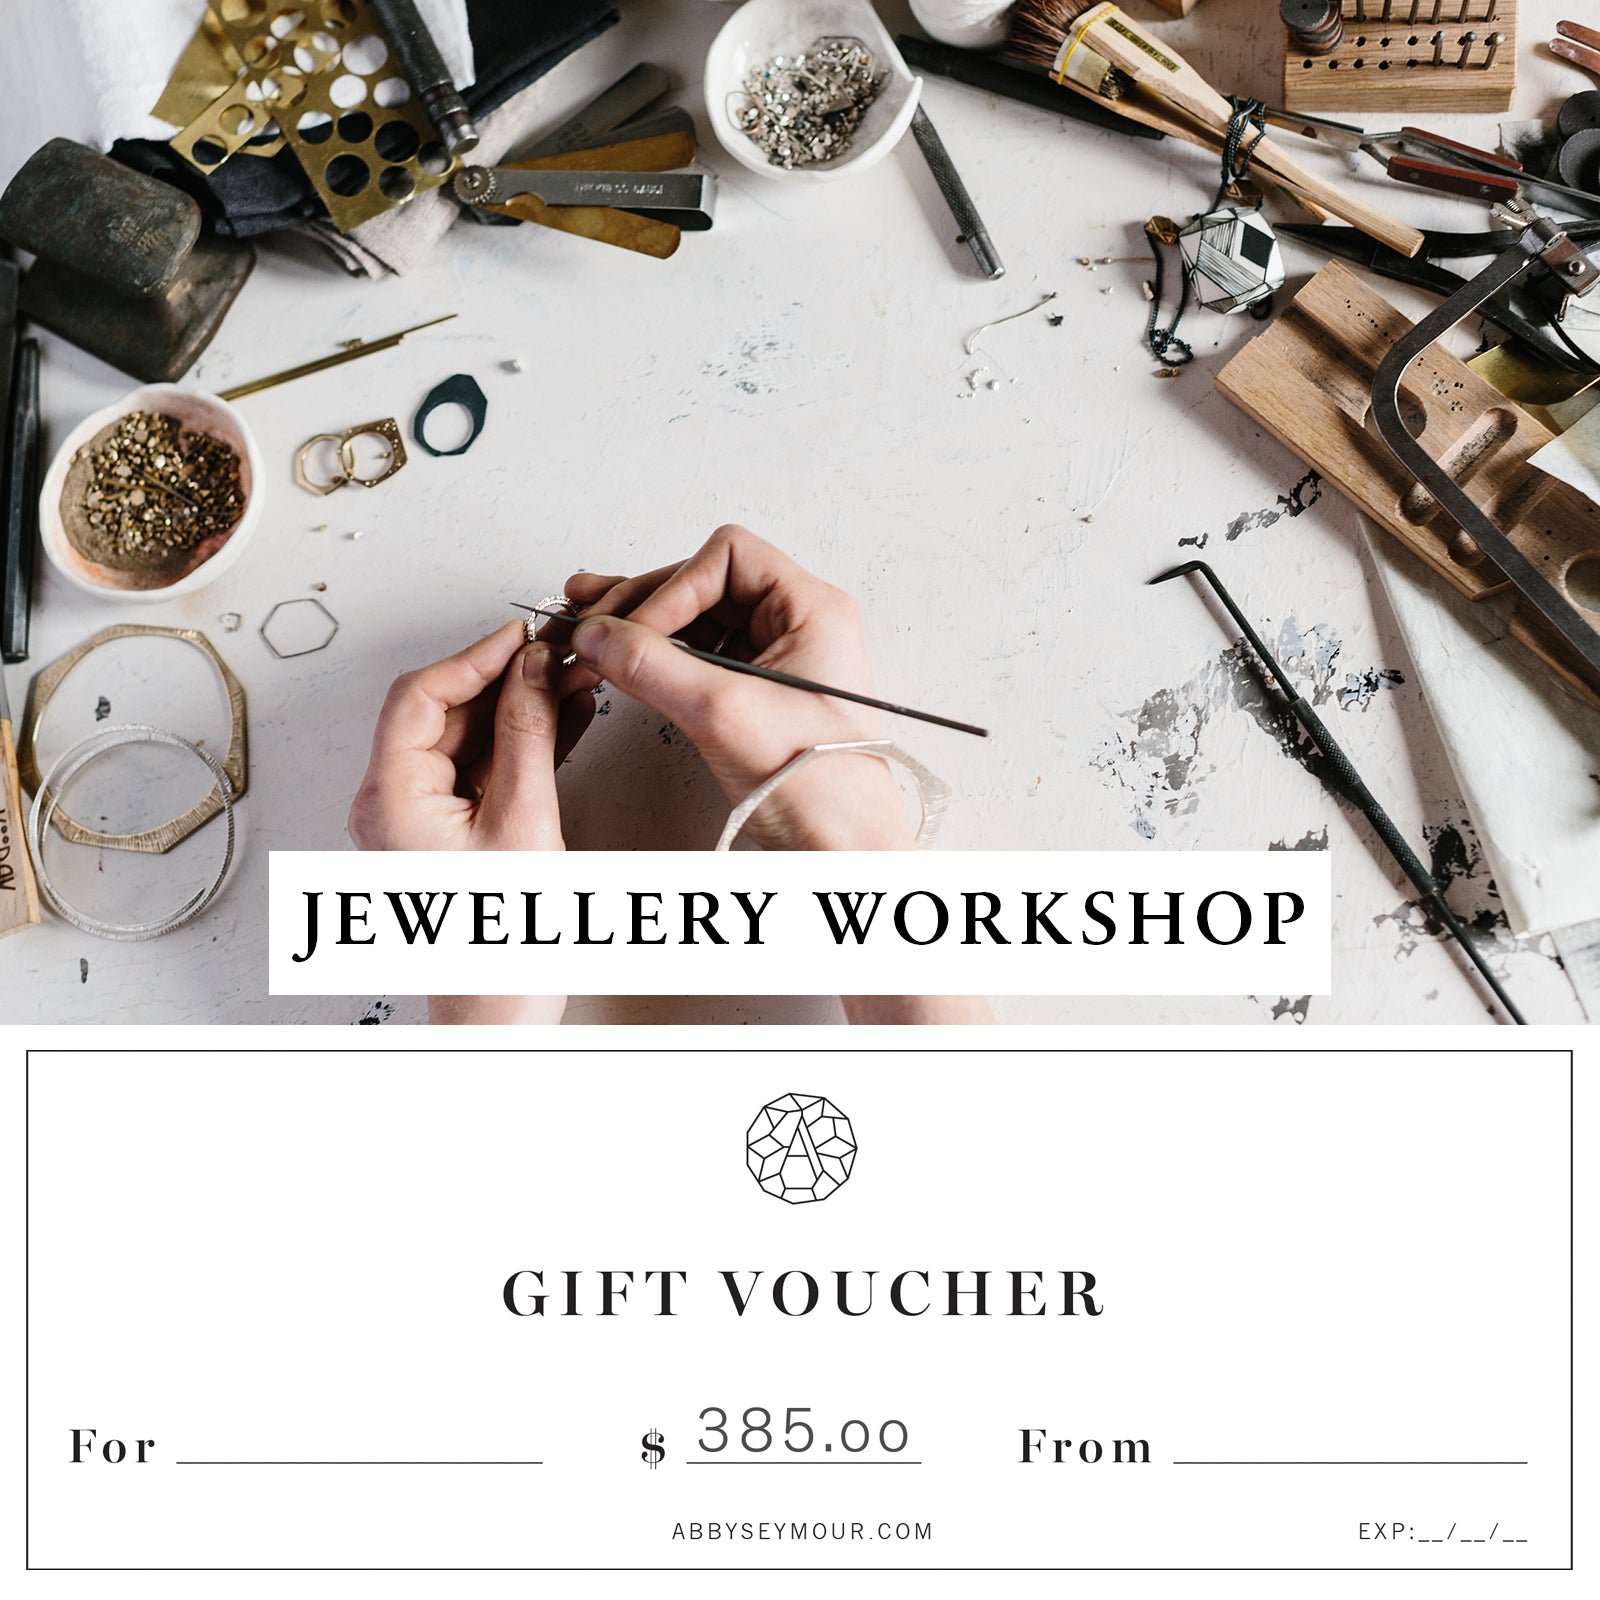 Workshop Gift Voucher $385